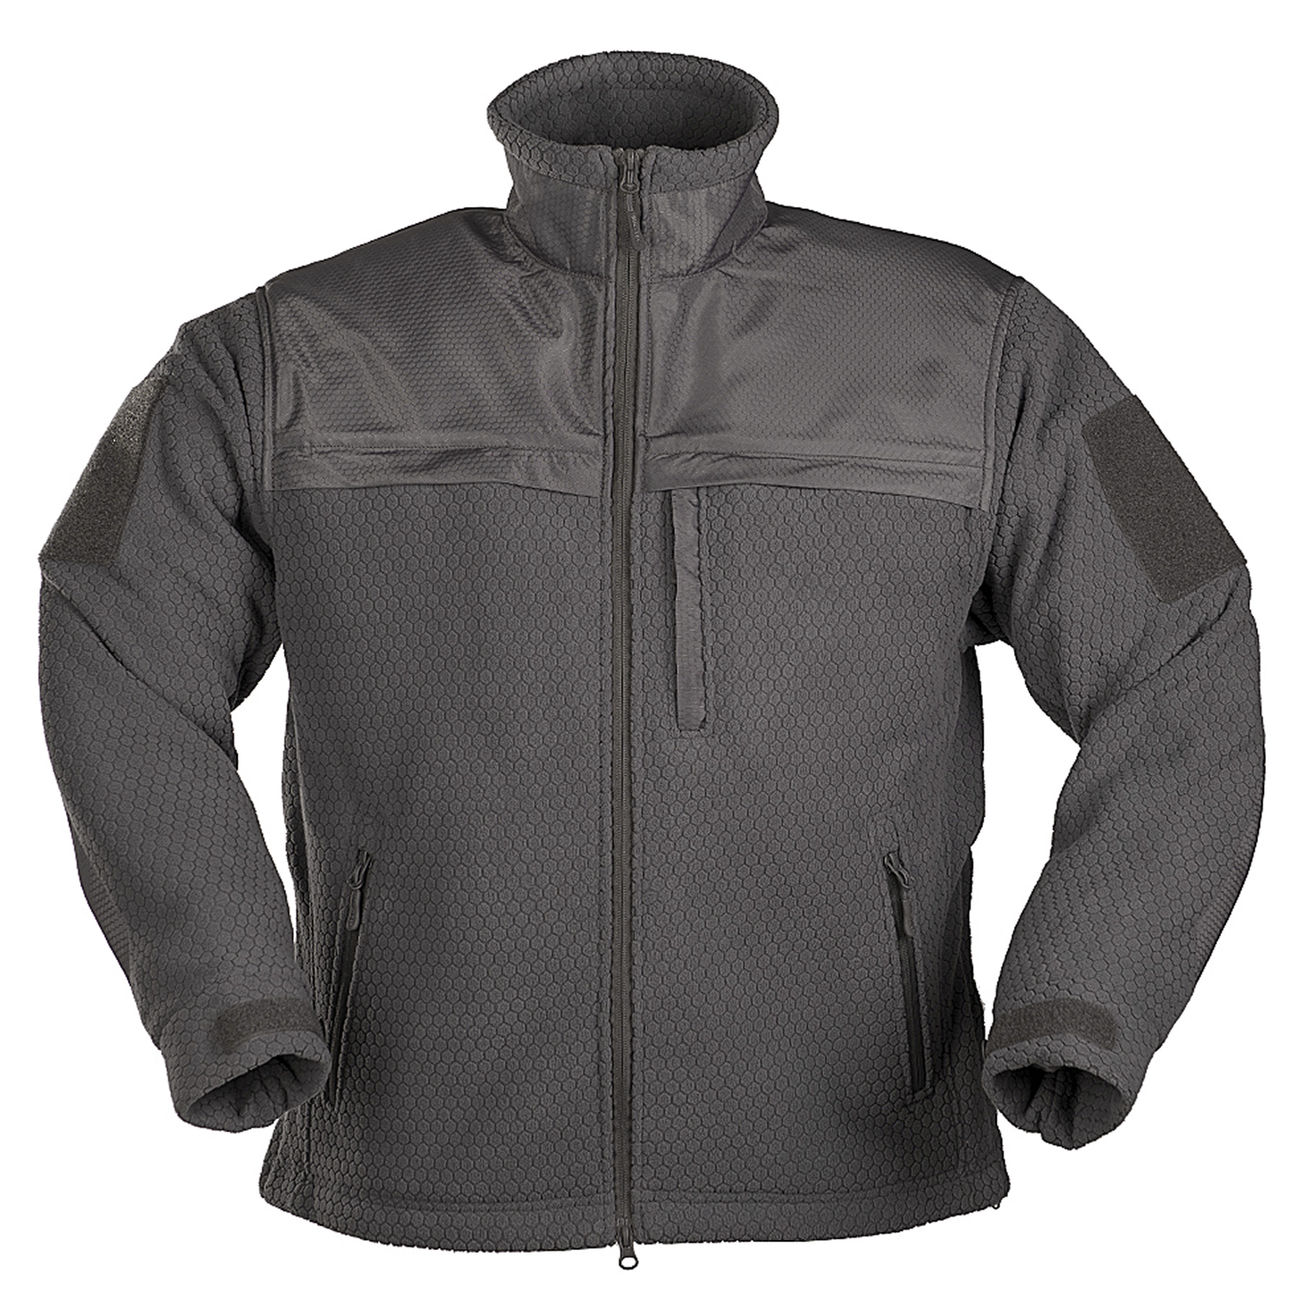 HexTac Fleecejacke Elite urban grey 0